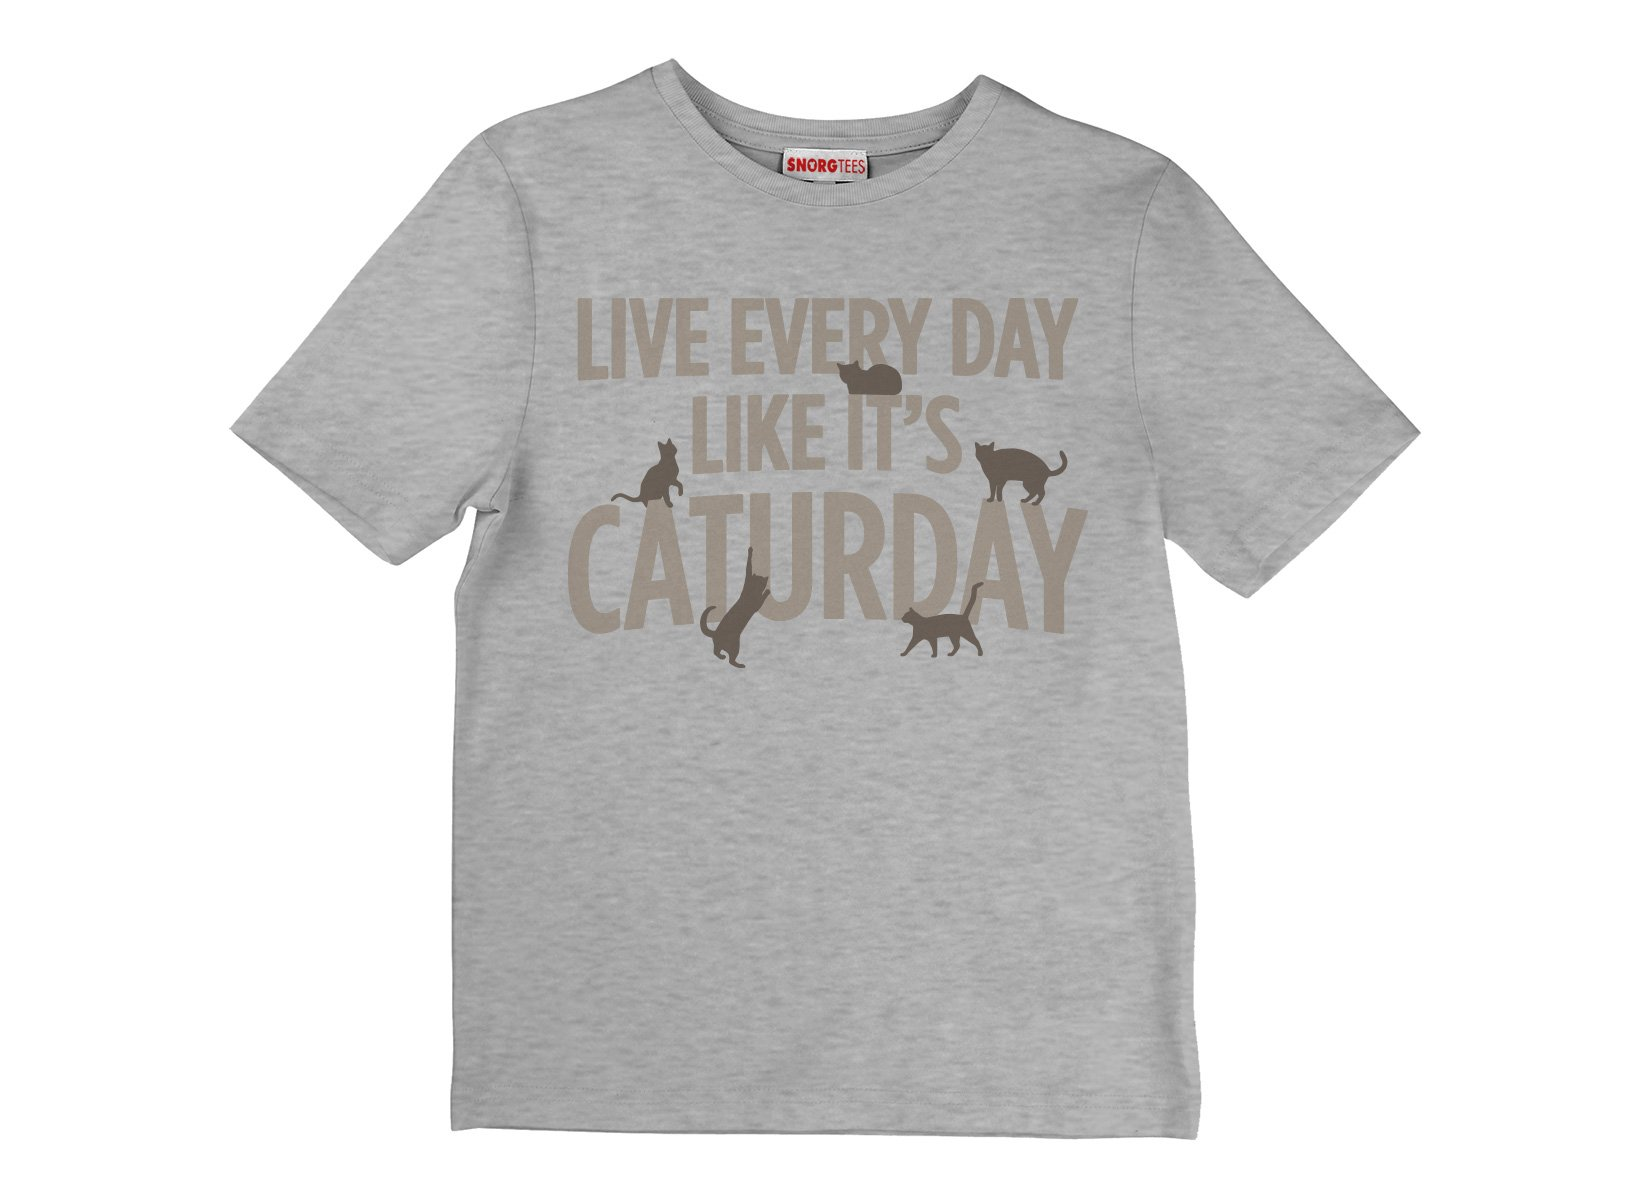 Live Every Day Like It's Caturday on Kids T-Shirt